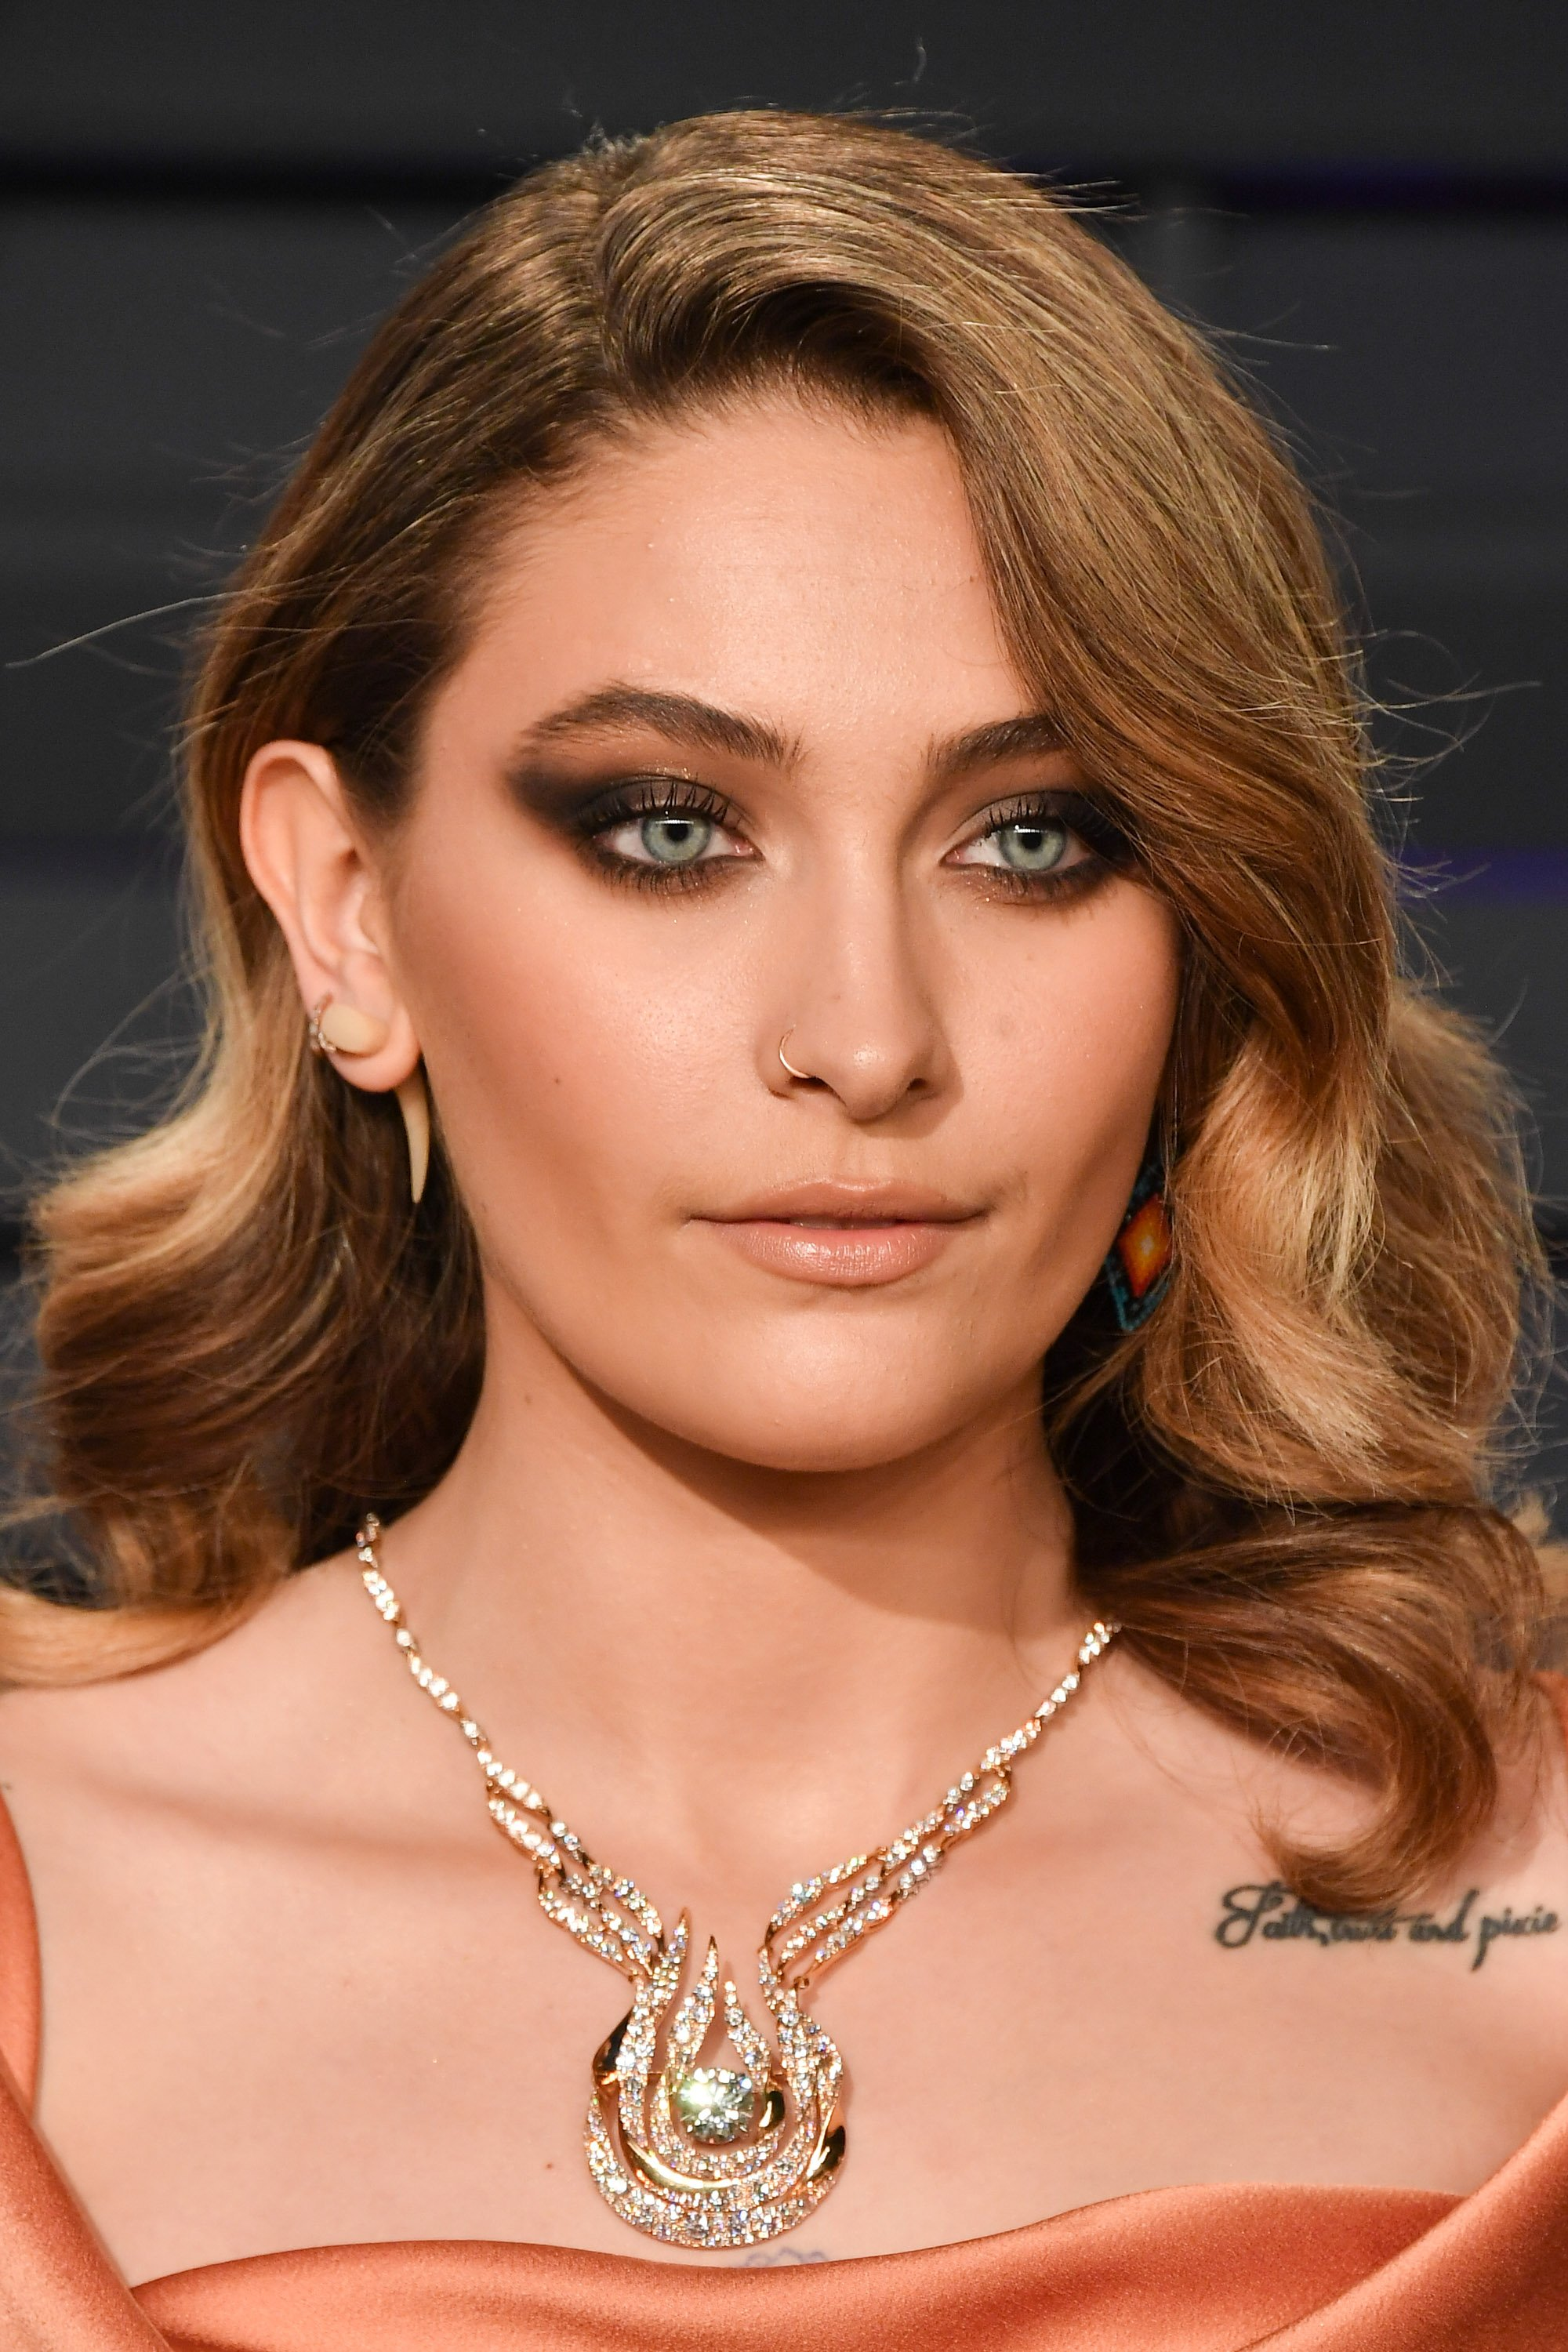 Paris Jackson attends the 2019 Vanity Fair Oscar Party at Wallis Annenberg Center on February 24, 2019   Photo: Getty Images